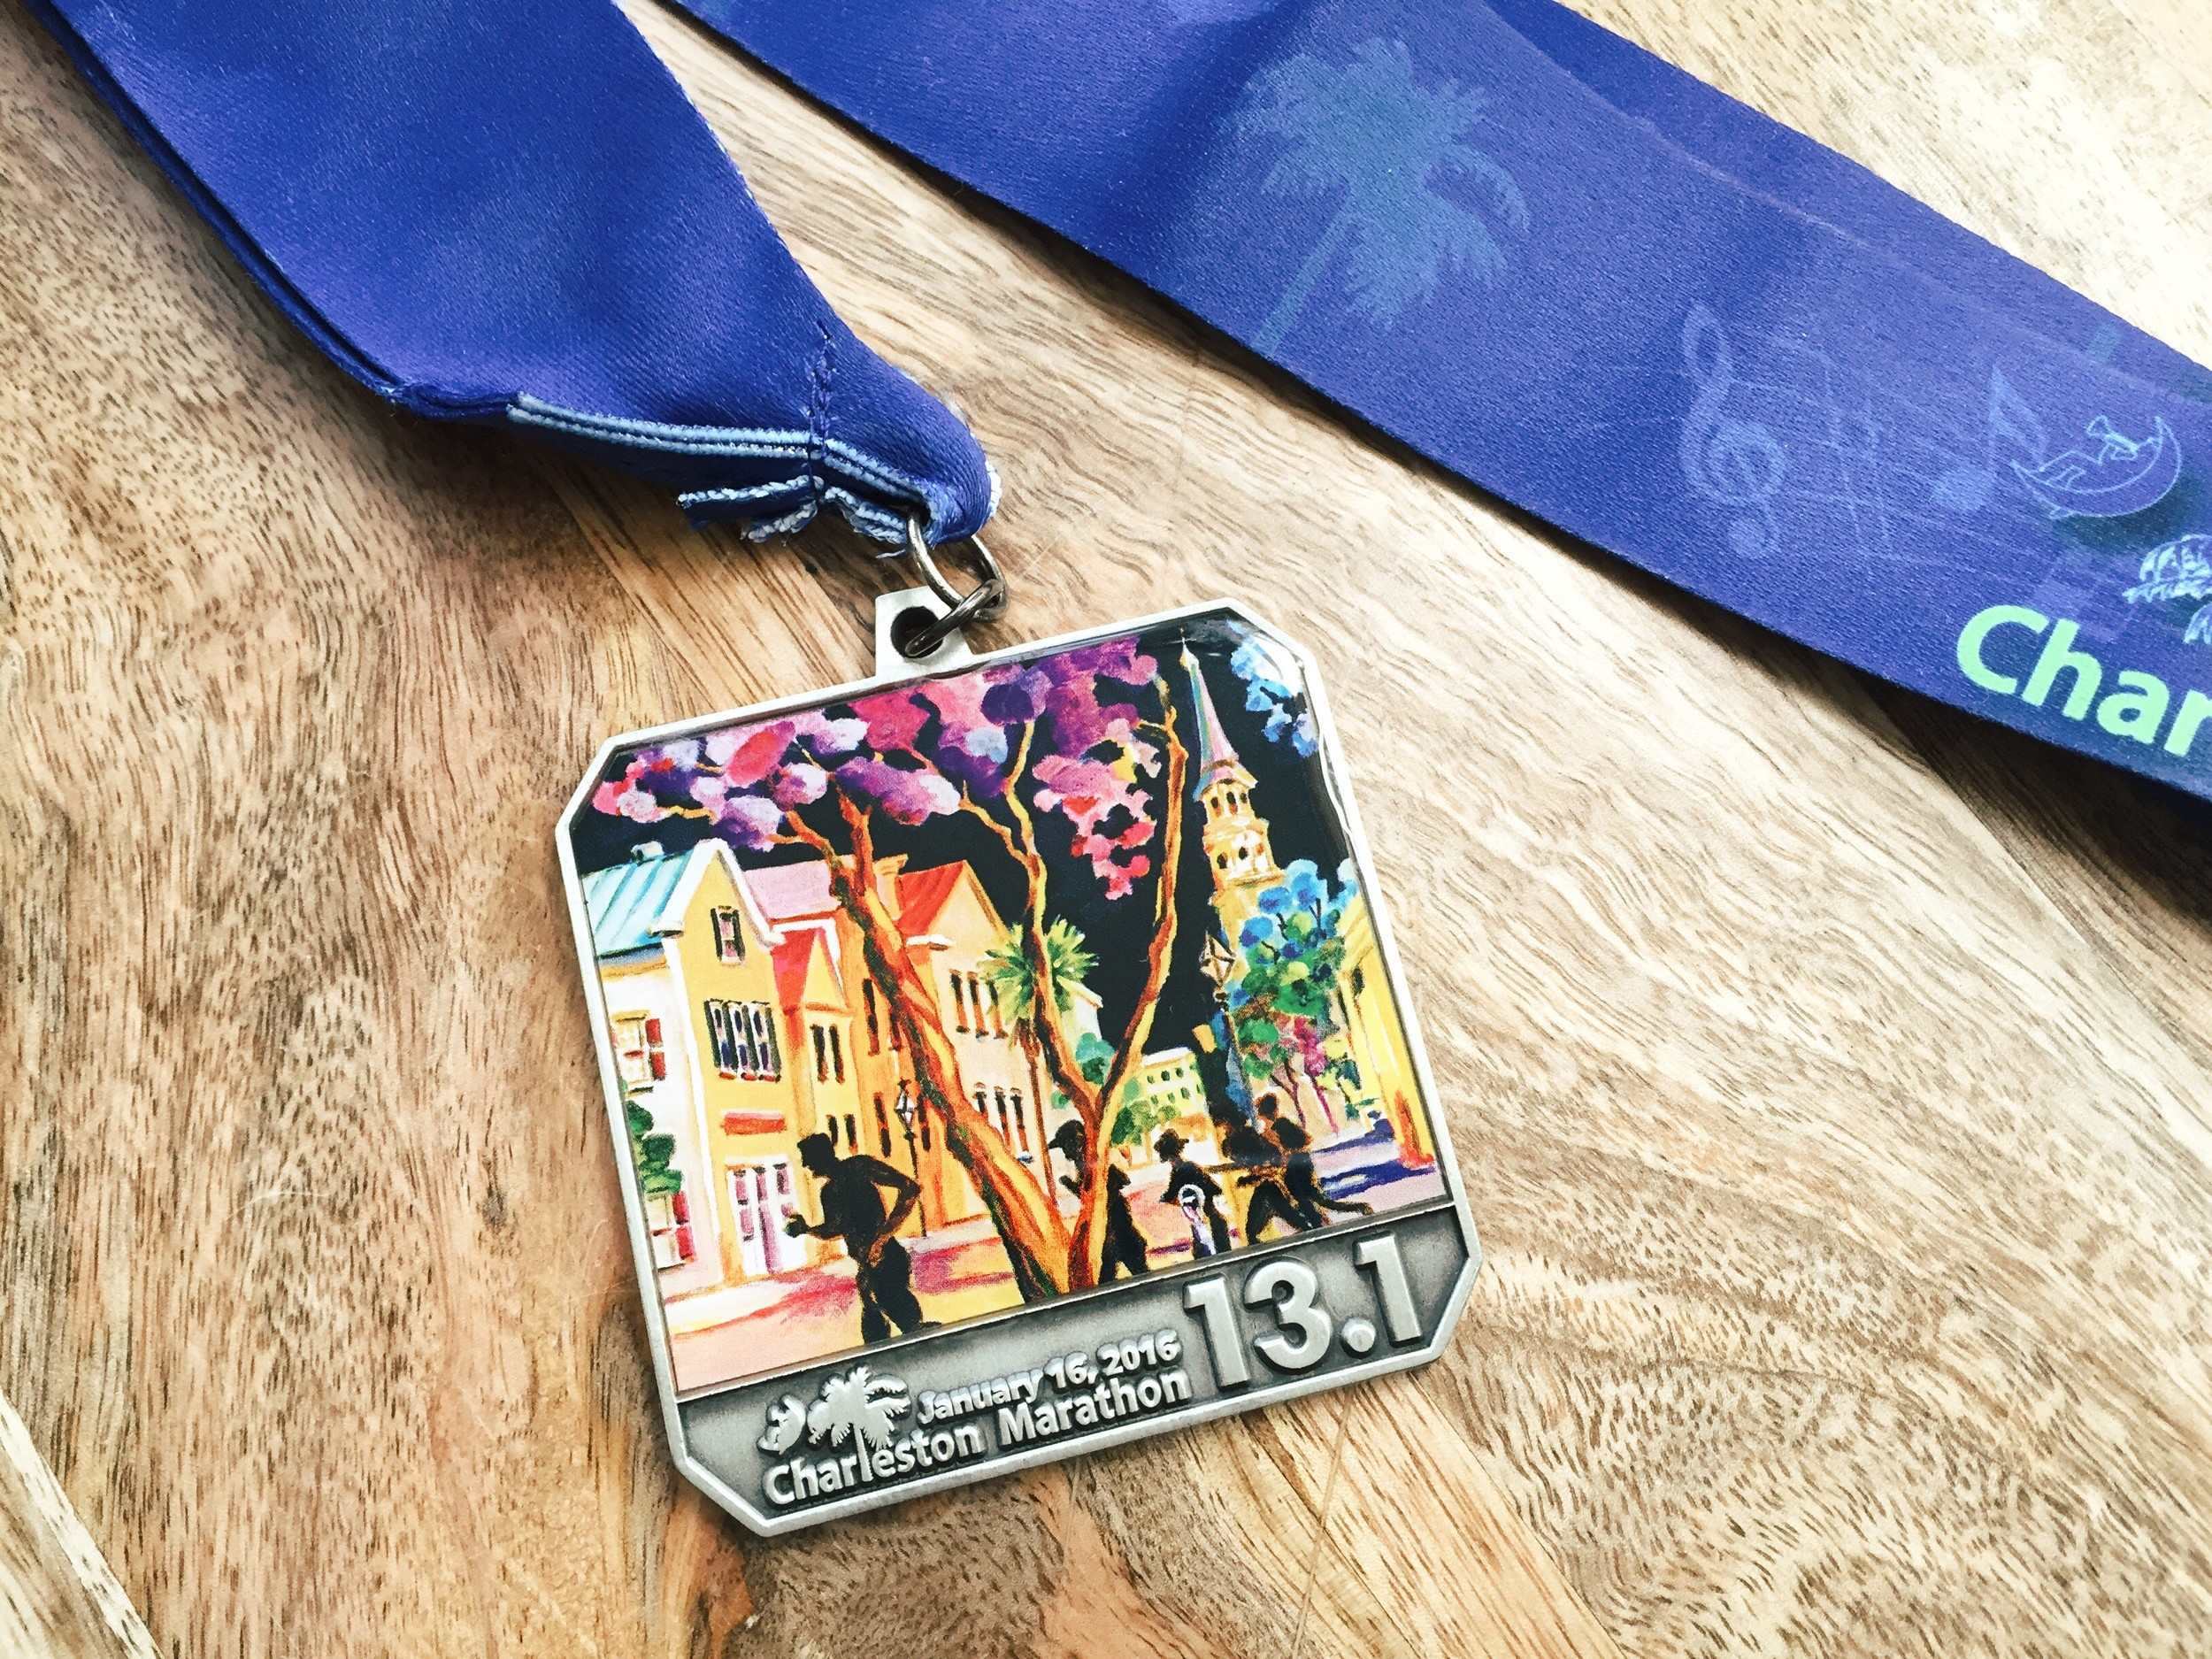 I loved the medal this year! My favorite so far for this race.